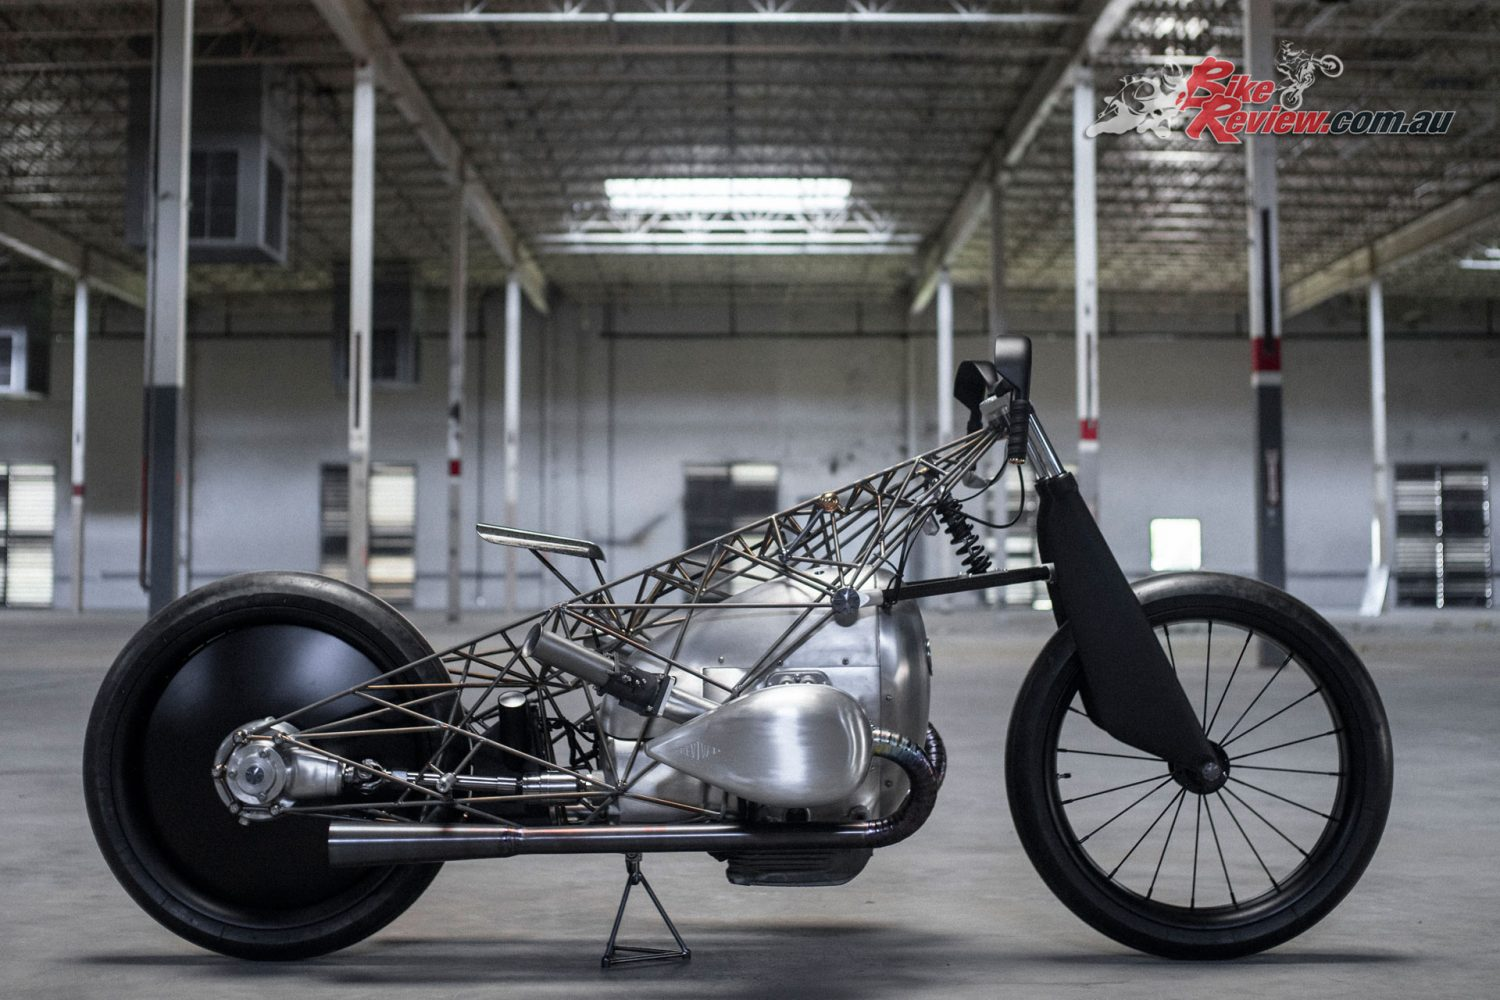 Revival Birdcage from Revival Cycles featuring BMW's Big Boxer intended for the cruiser segment